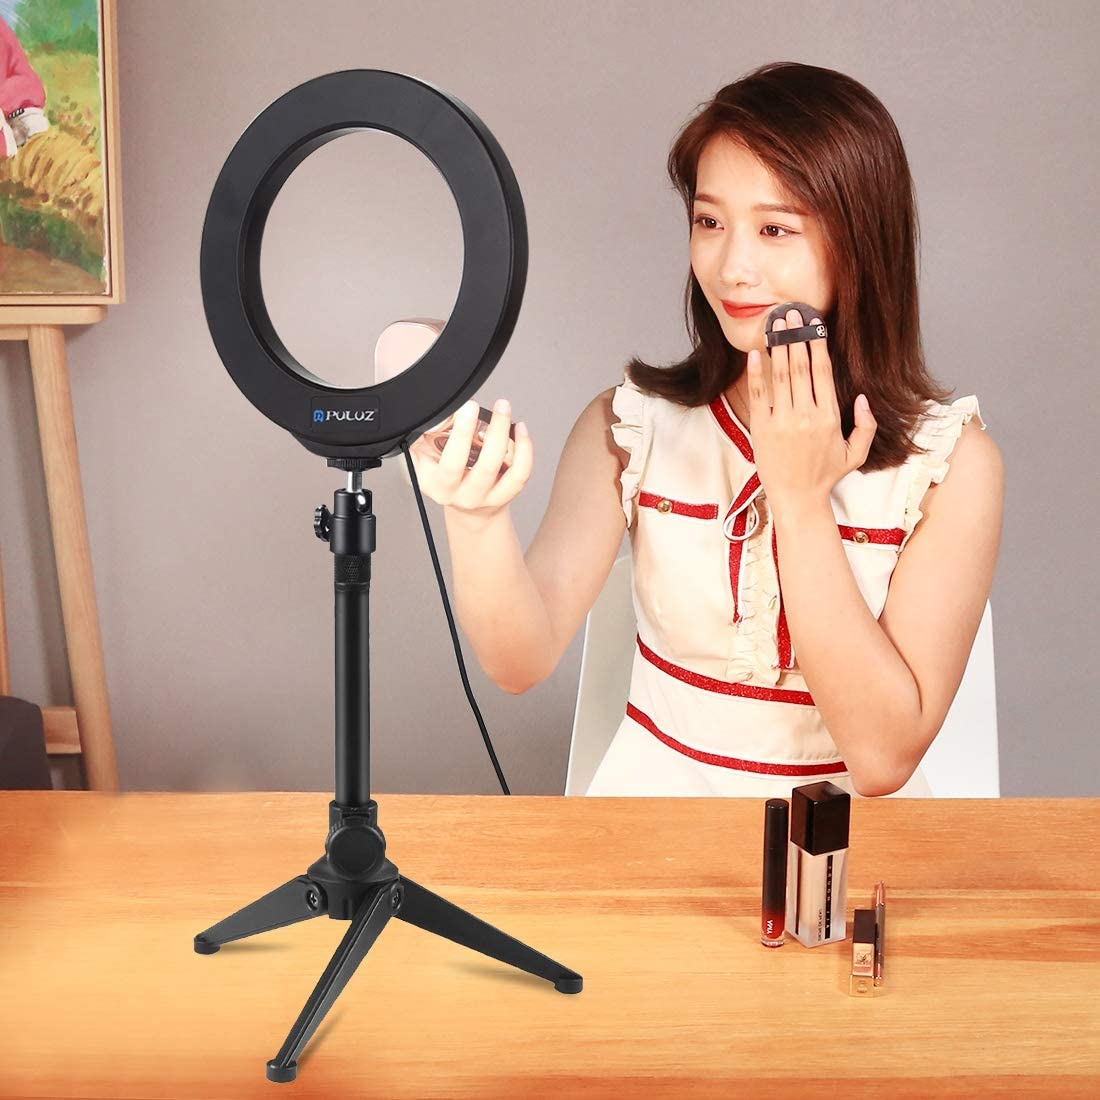 8 Colour 4.7 inch RGBW Dimmable LED Ring Light kit with Desktop Tripod Mount and Cold Shoe Tripod Ball Head/for Selfie YouTube Video Makeup 10 Brightness Levels PULUZ Ring Light